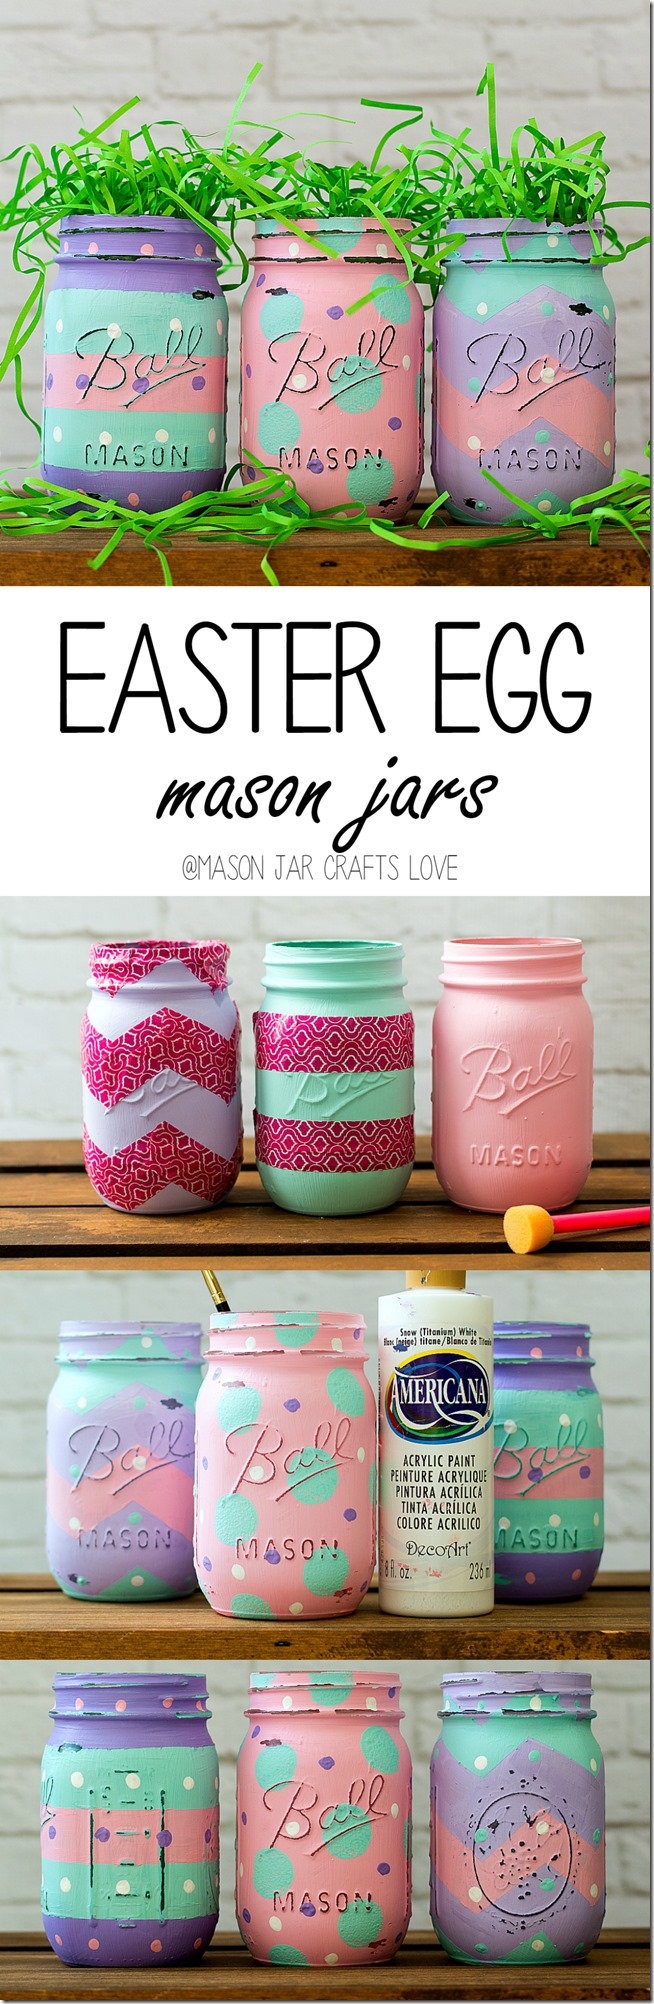 Easter-egg-mason-jars